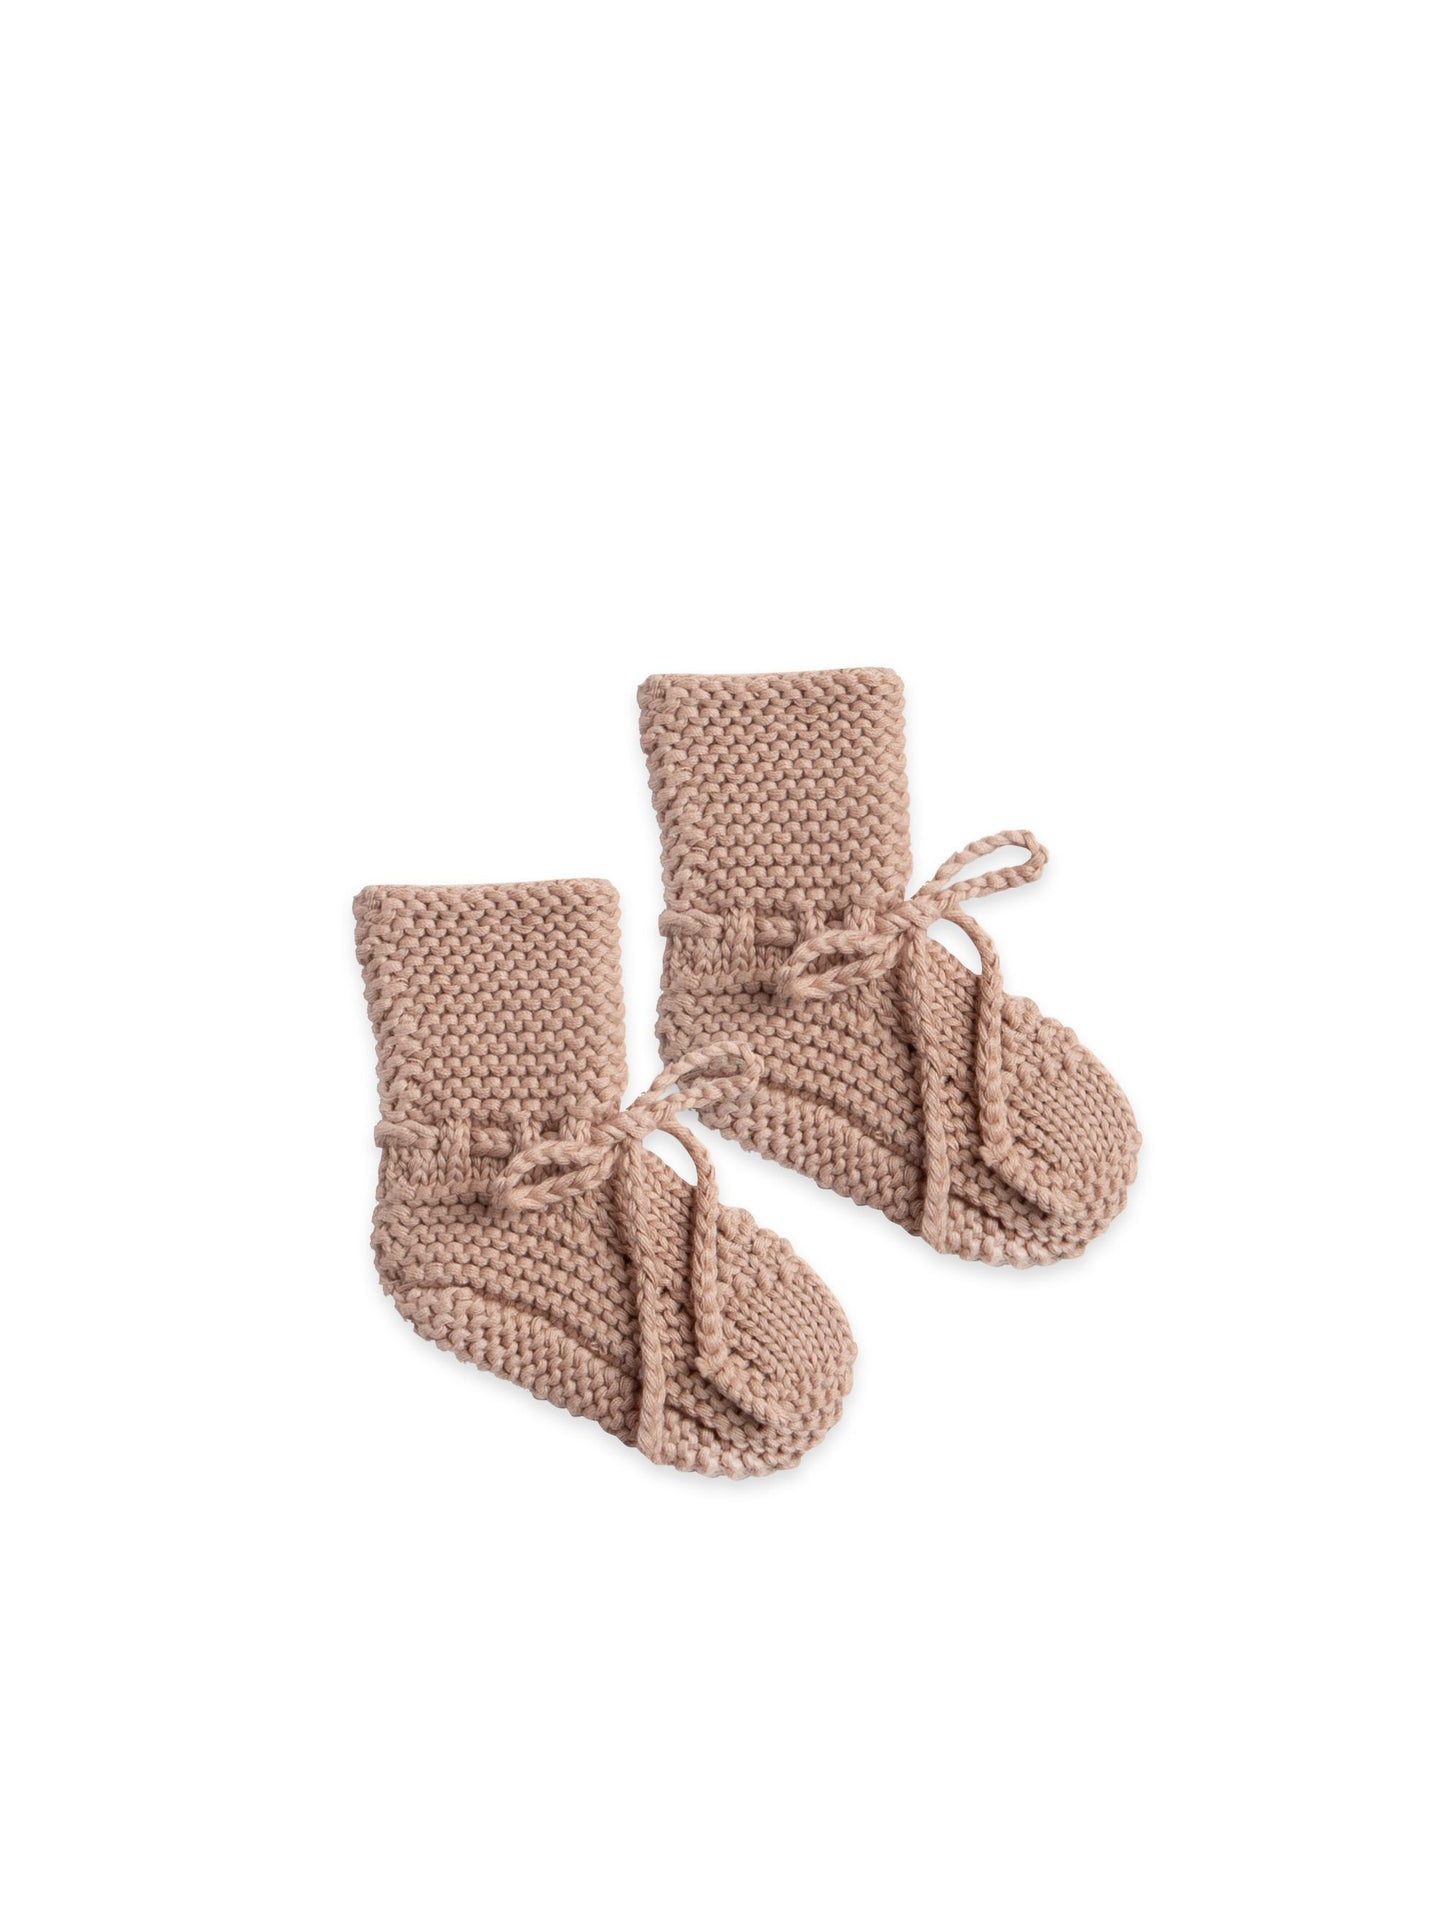 Quincy Mae - Organic Knit Booties - Petal